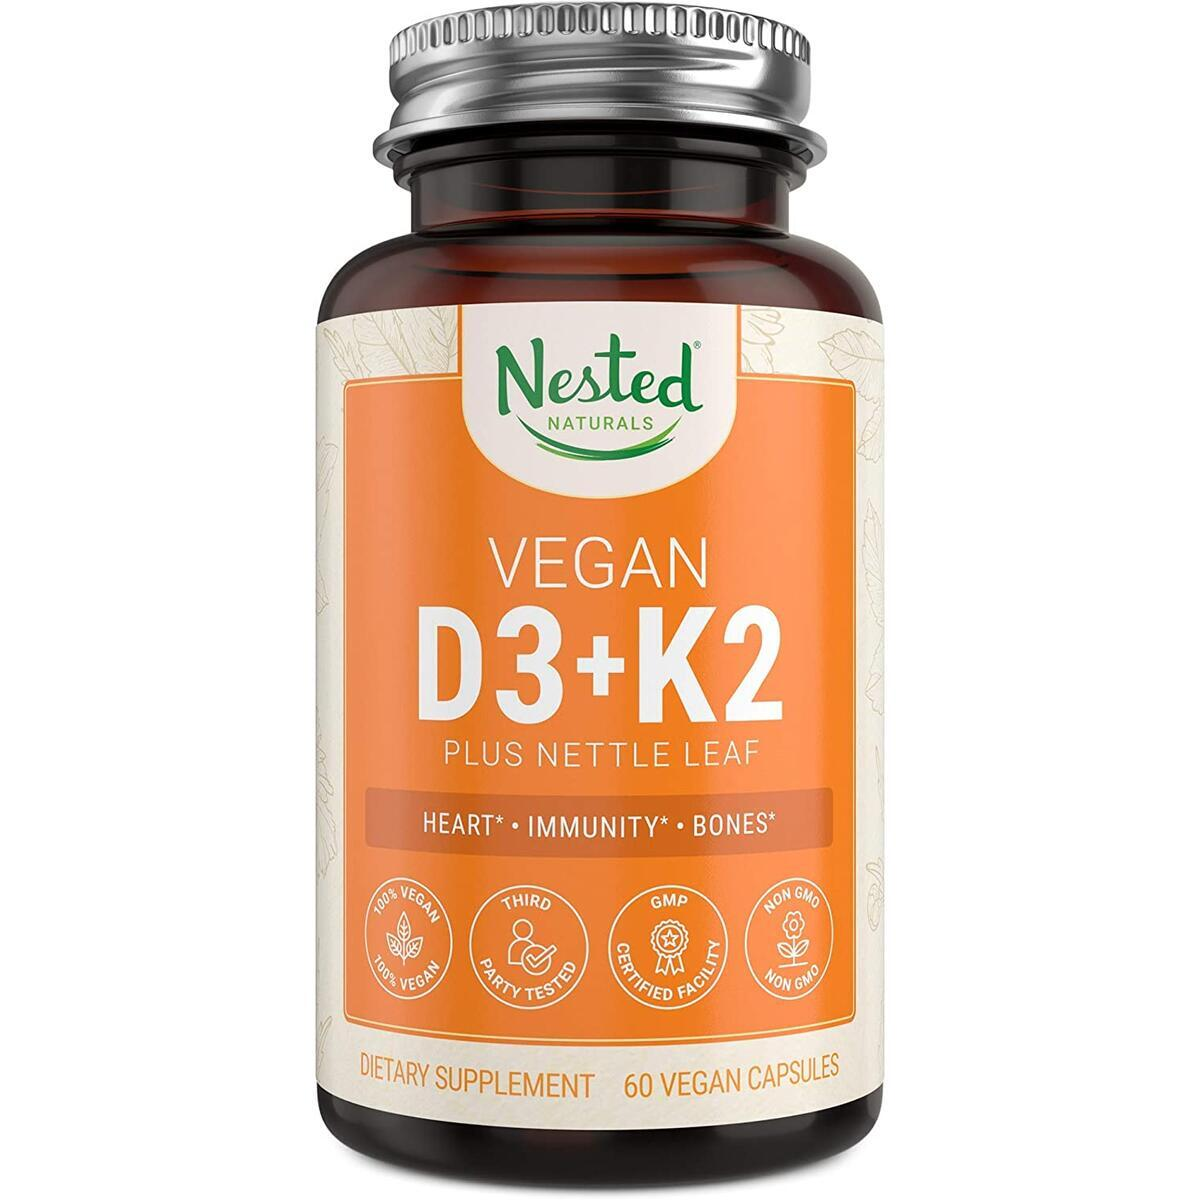 Nested Naturals Vitamin D3+K2 Plus Nettle Leaf Supplement | 5000 IU Vitamin D-3 Made from Chickpeas, with Vitamin K-2 MK7